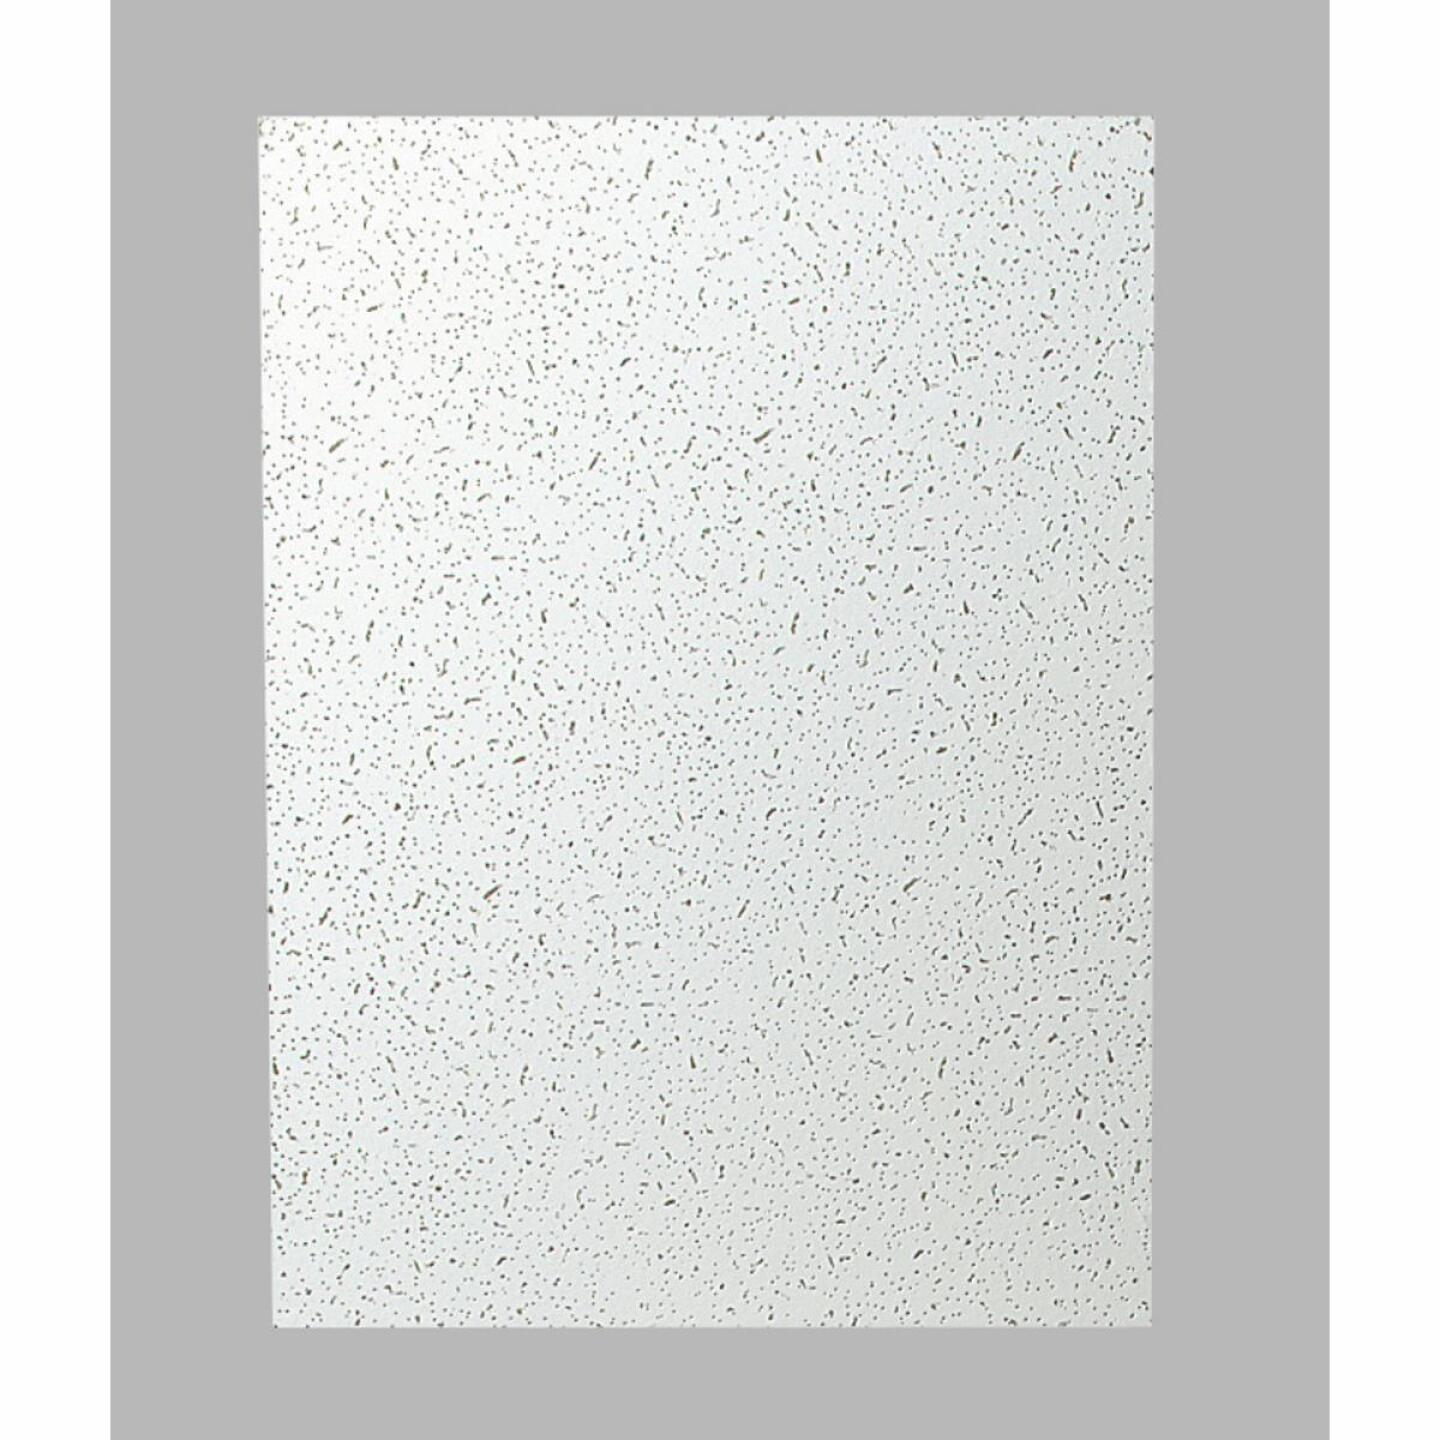 Plateau 2 Ft. x 4 Ft. White Mineral Fiber Ceiling Tile (8-Count) Image 2